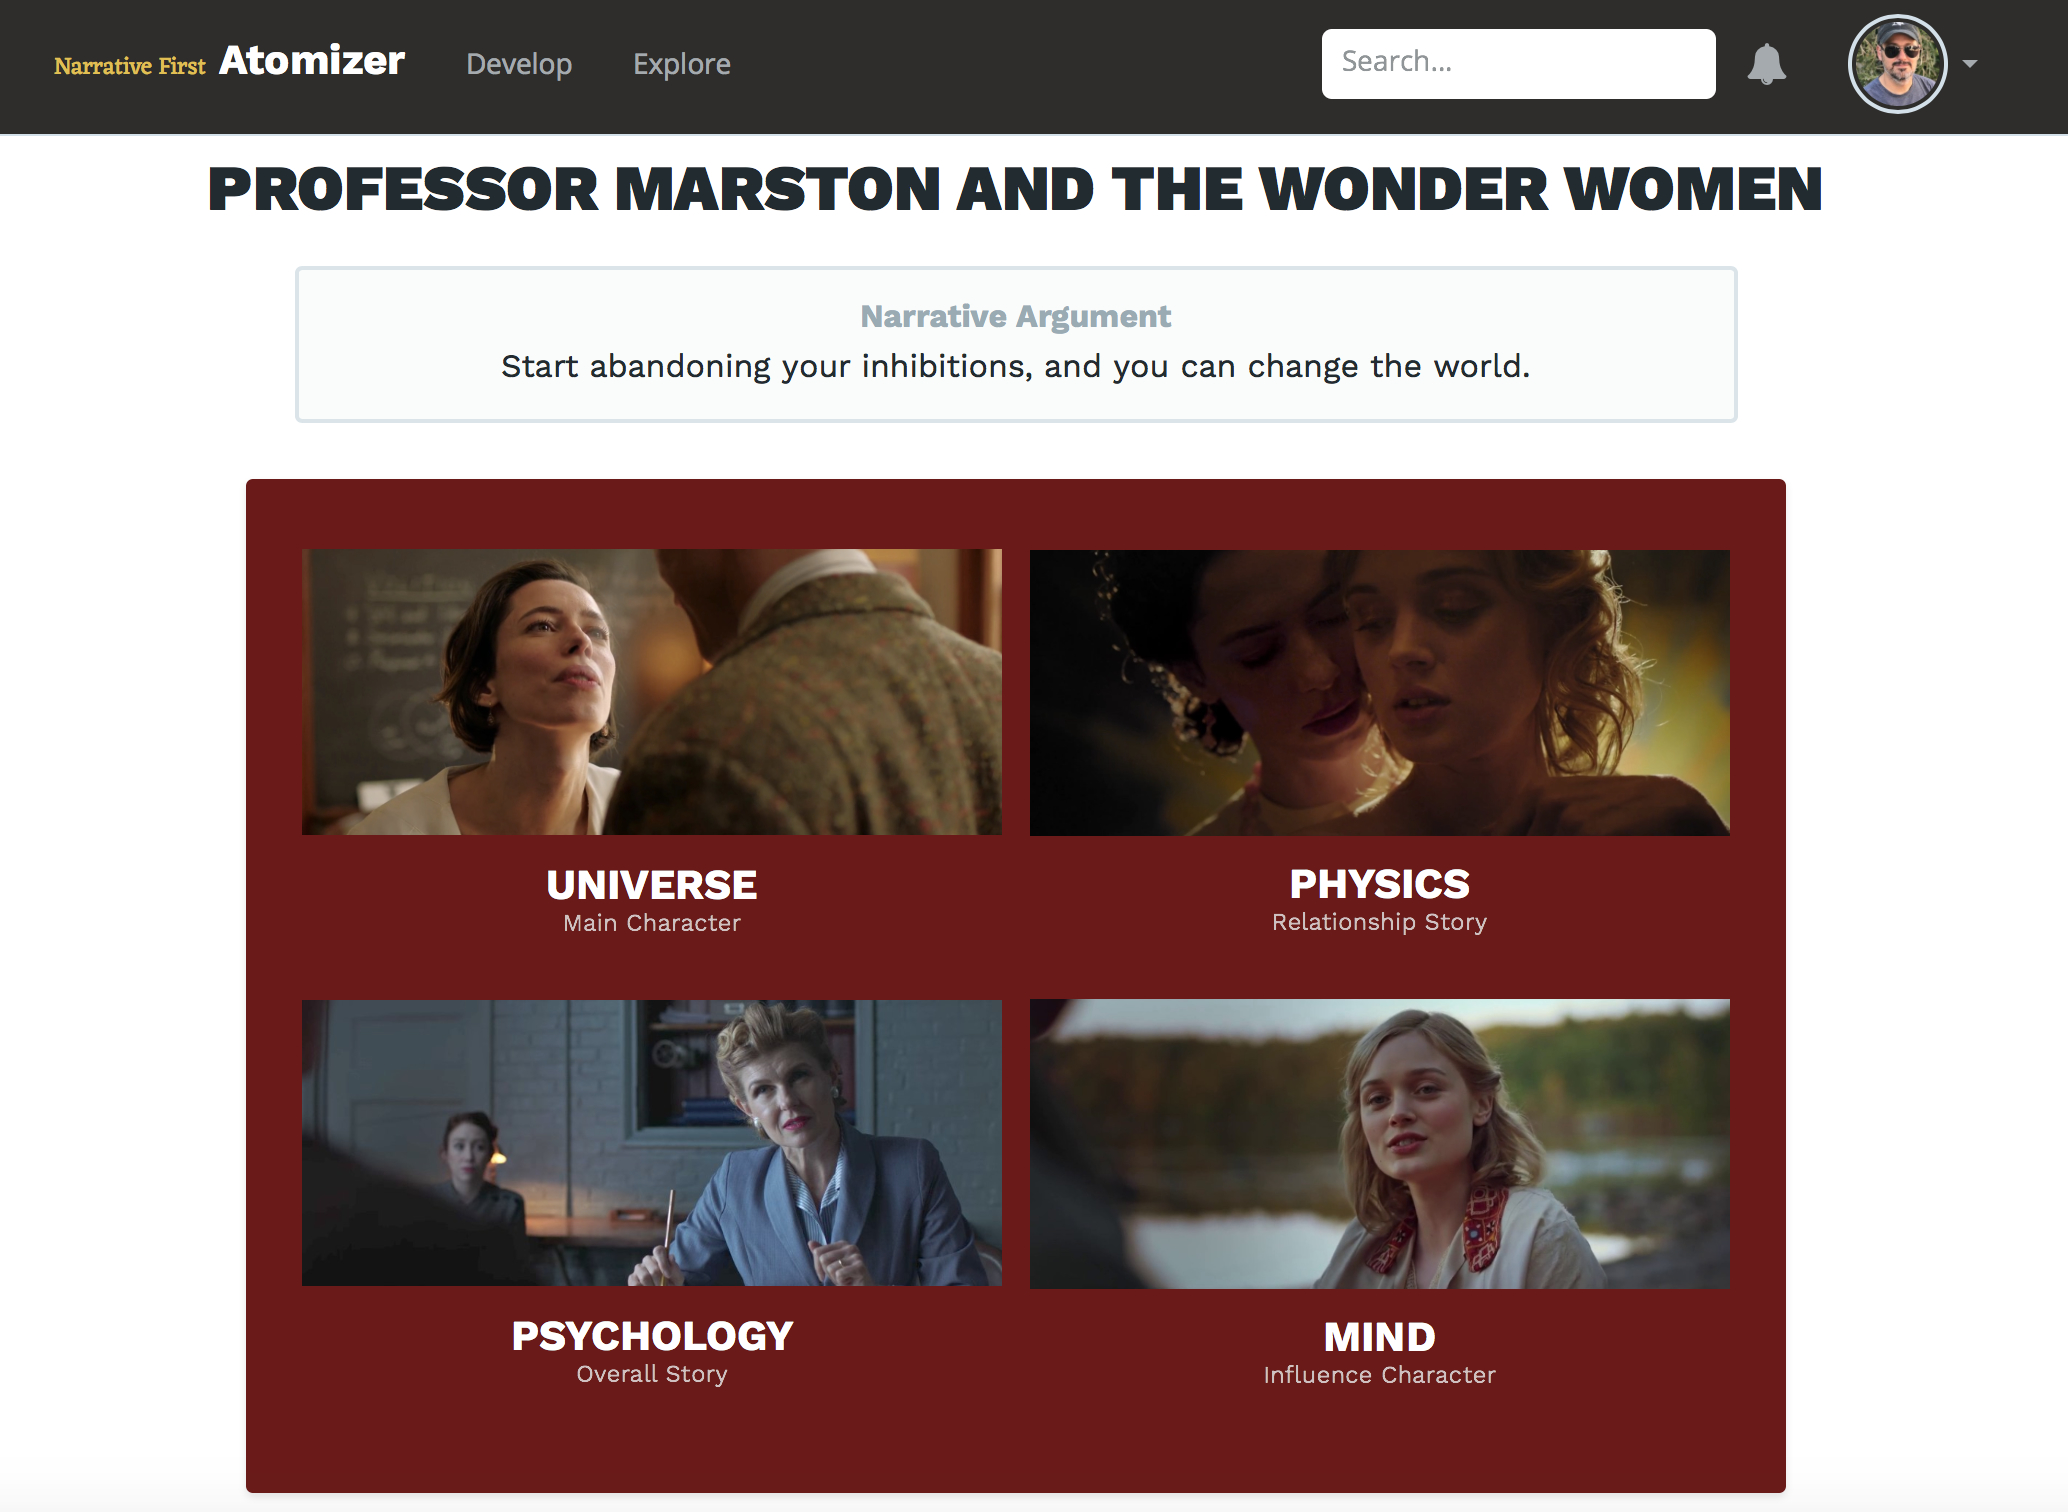 The Four Throughlines of Professor Marston and the Wonder Women